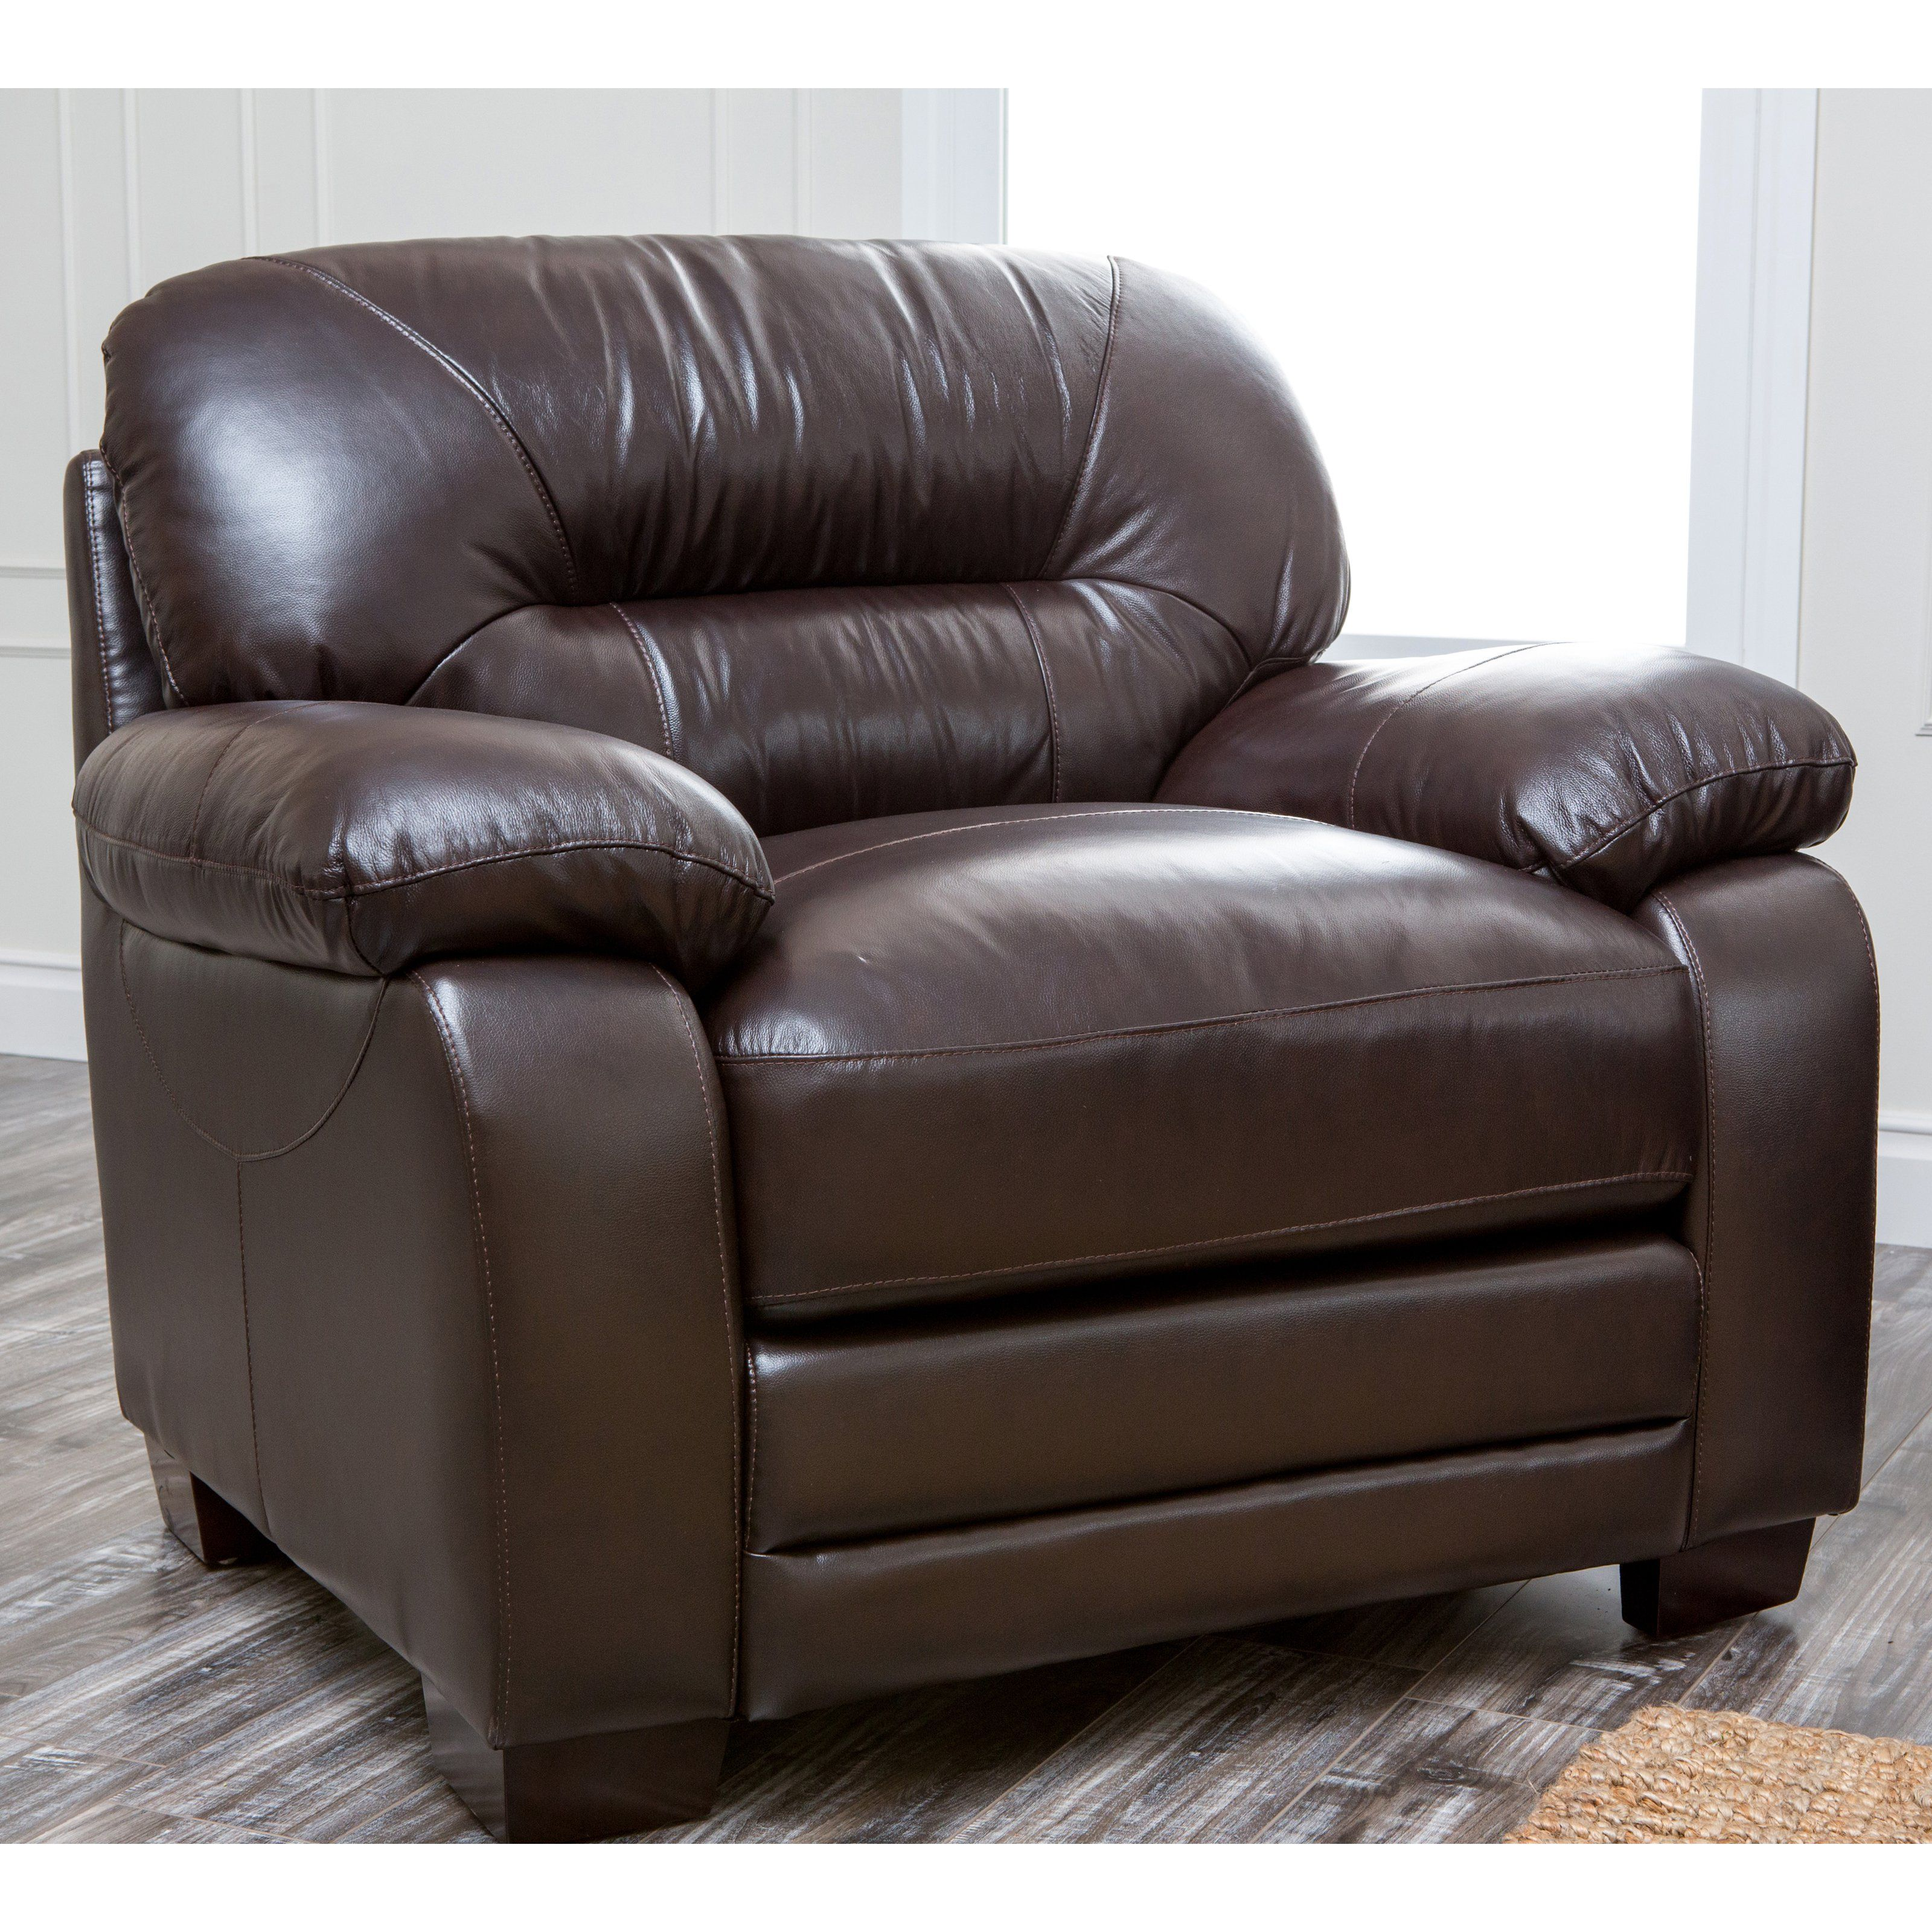 Superior Abbyson Brentwood Brown Leather Chair   CI 1307 BRN 1